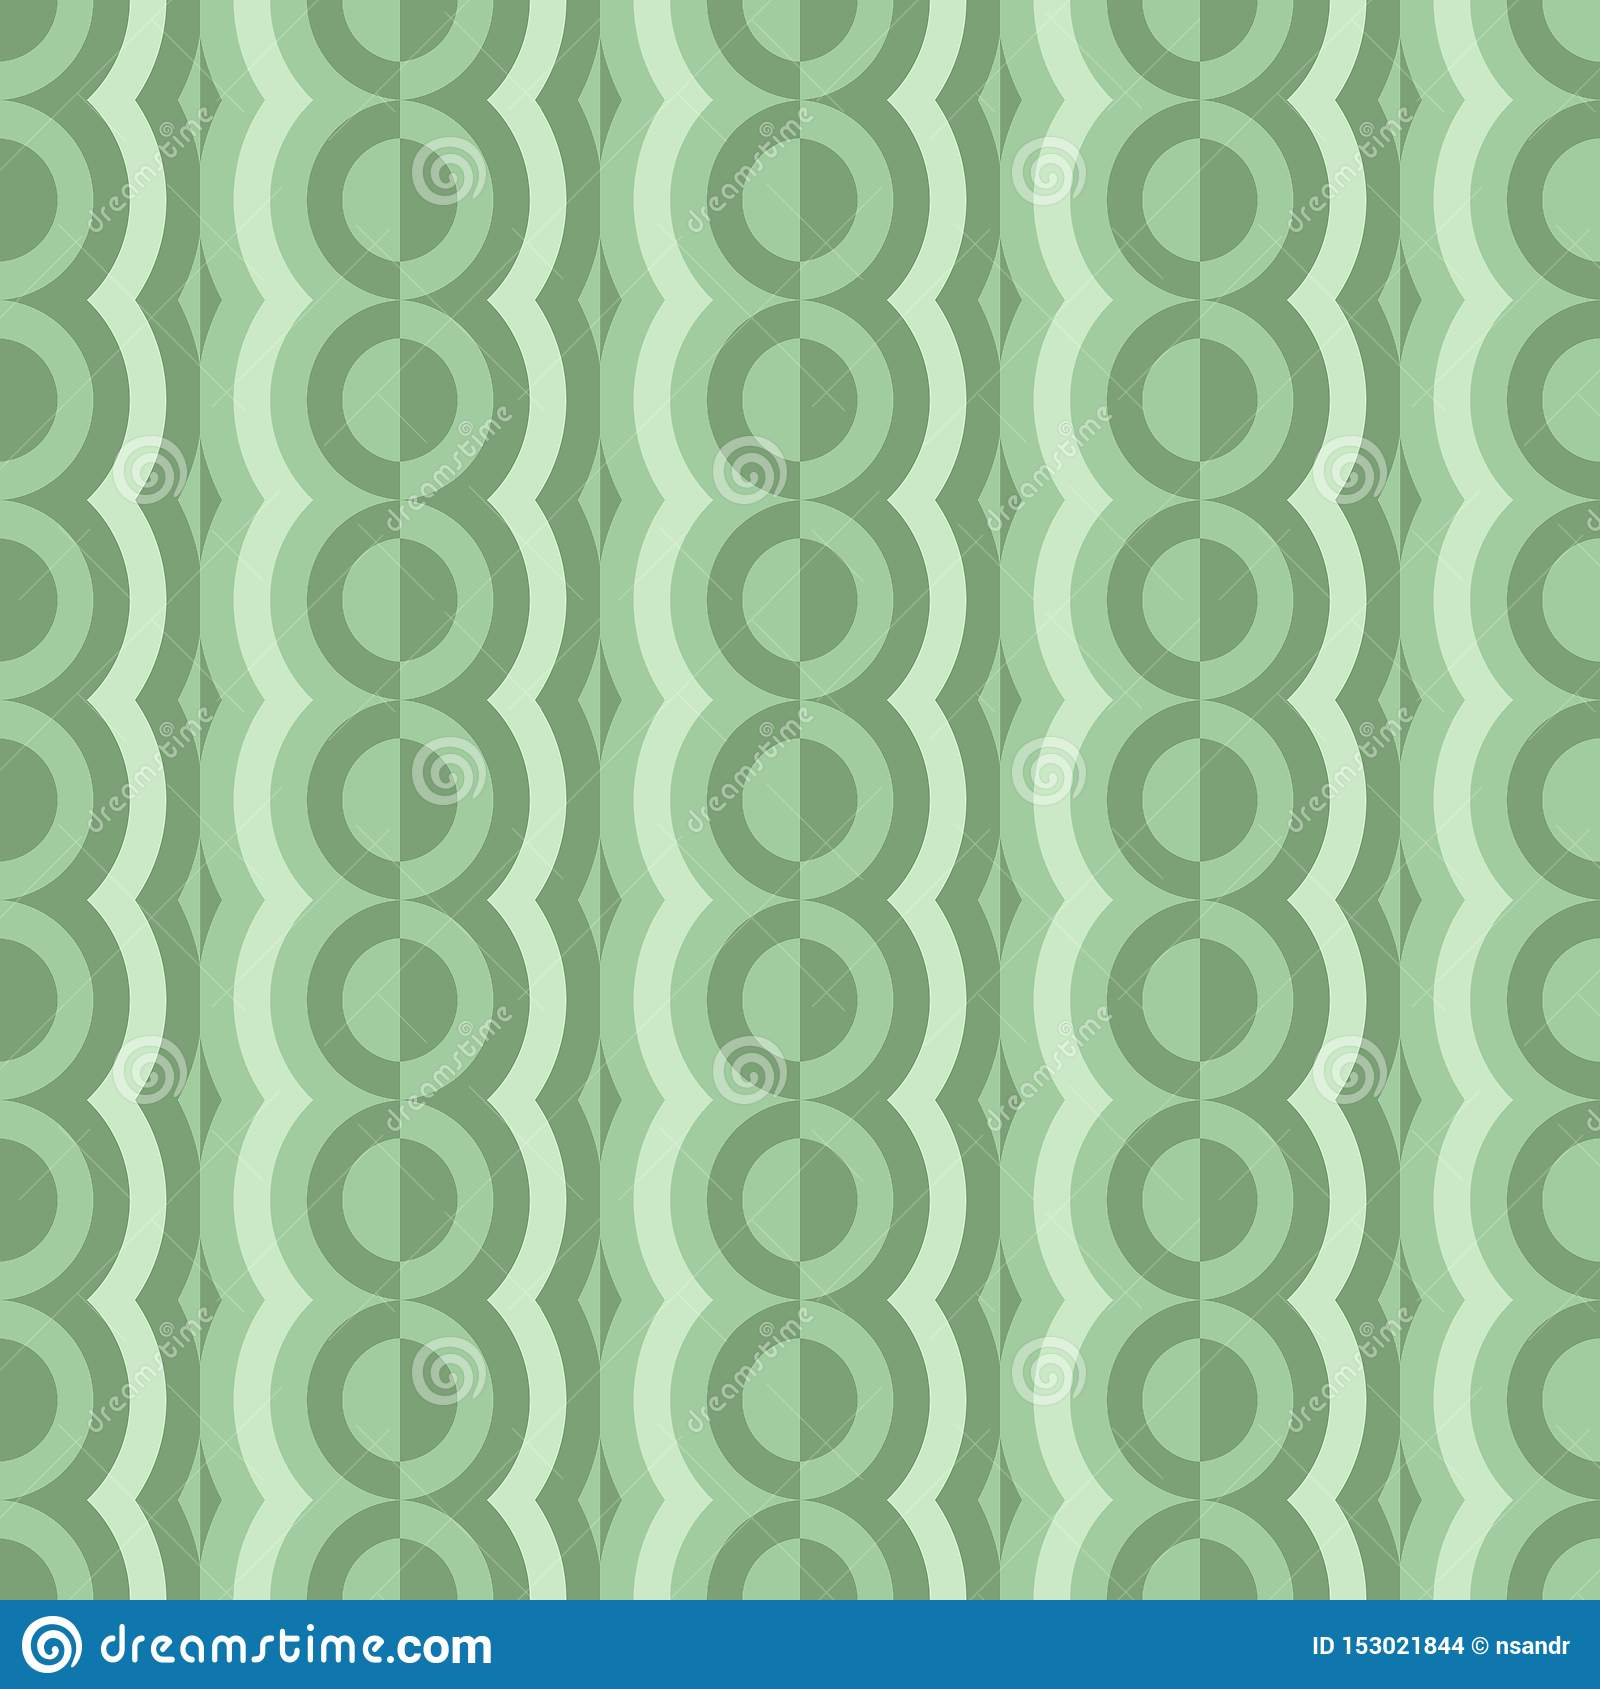 Vector rounded seamless pattern with contrast elements. Retro abstract geometric garlands for textile, prints, wallpaper, wrapping